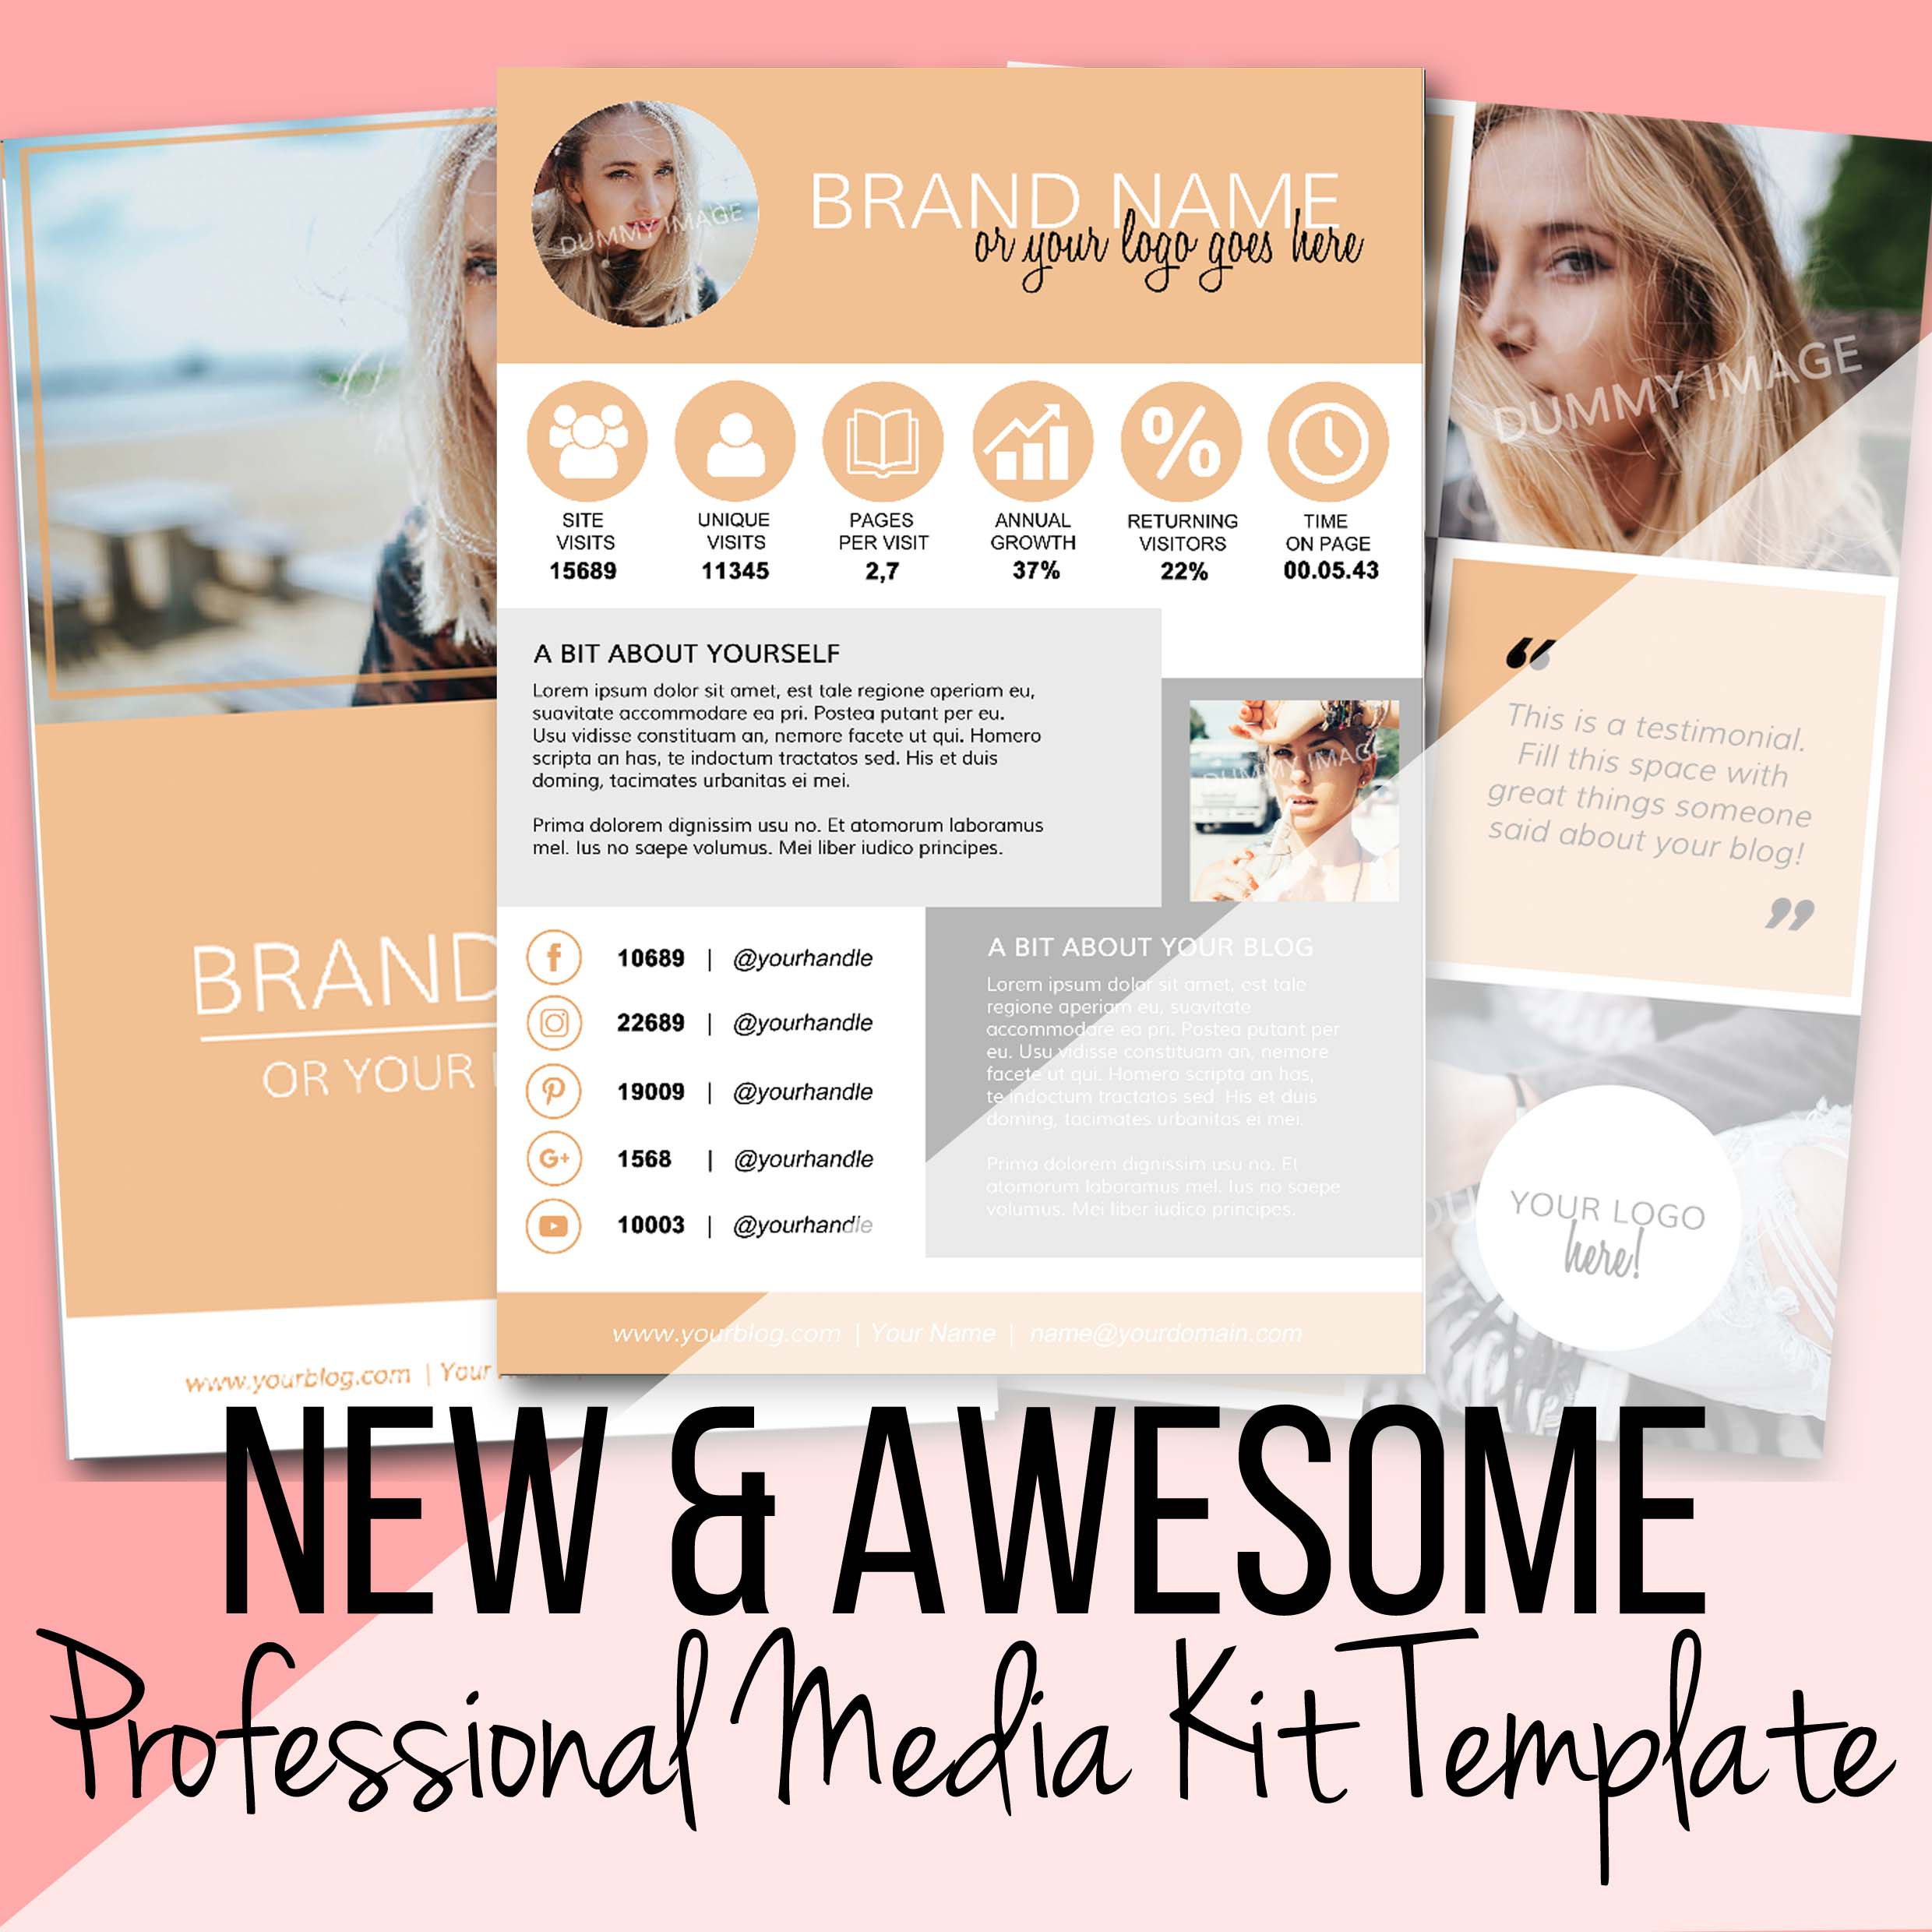 Download Professional Customisable Media Kit Template for Bloggers